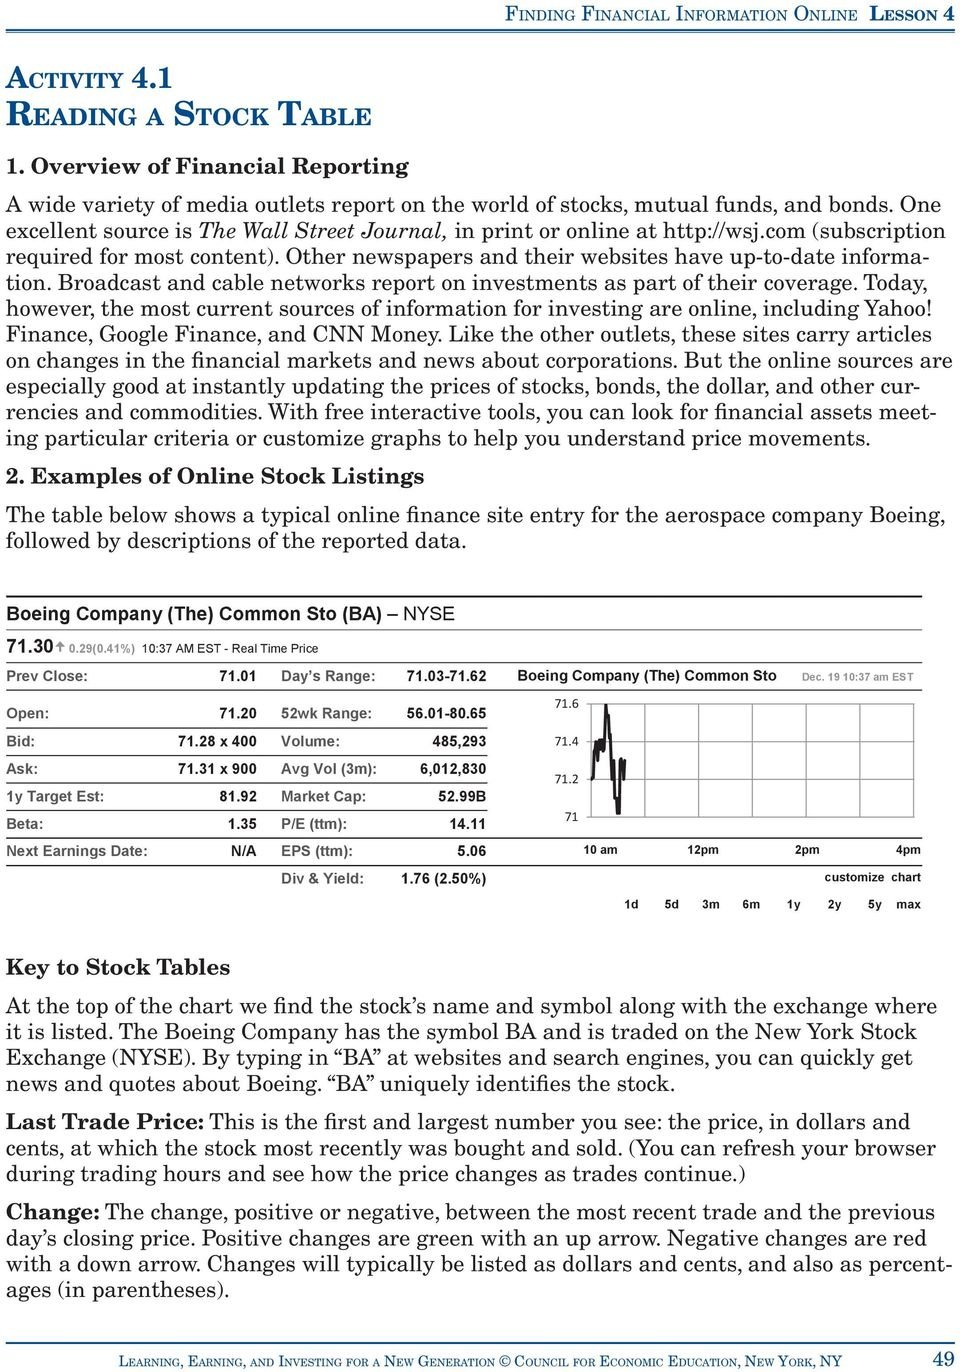 Activity 41 Reading A Stock Table  Pdf Also Reading A Stock Table Worksheet Answers